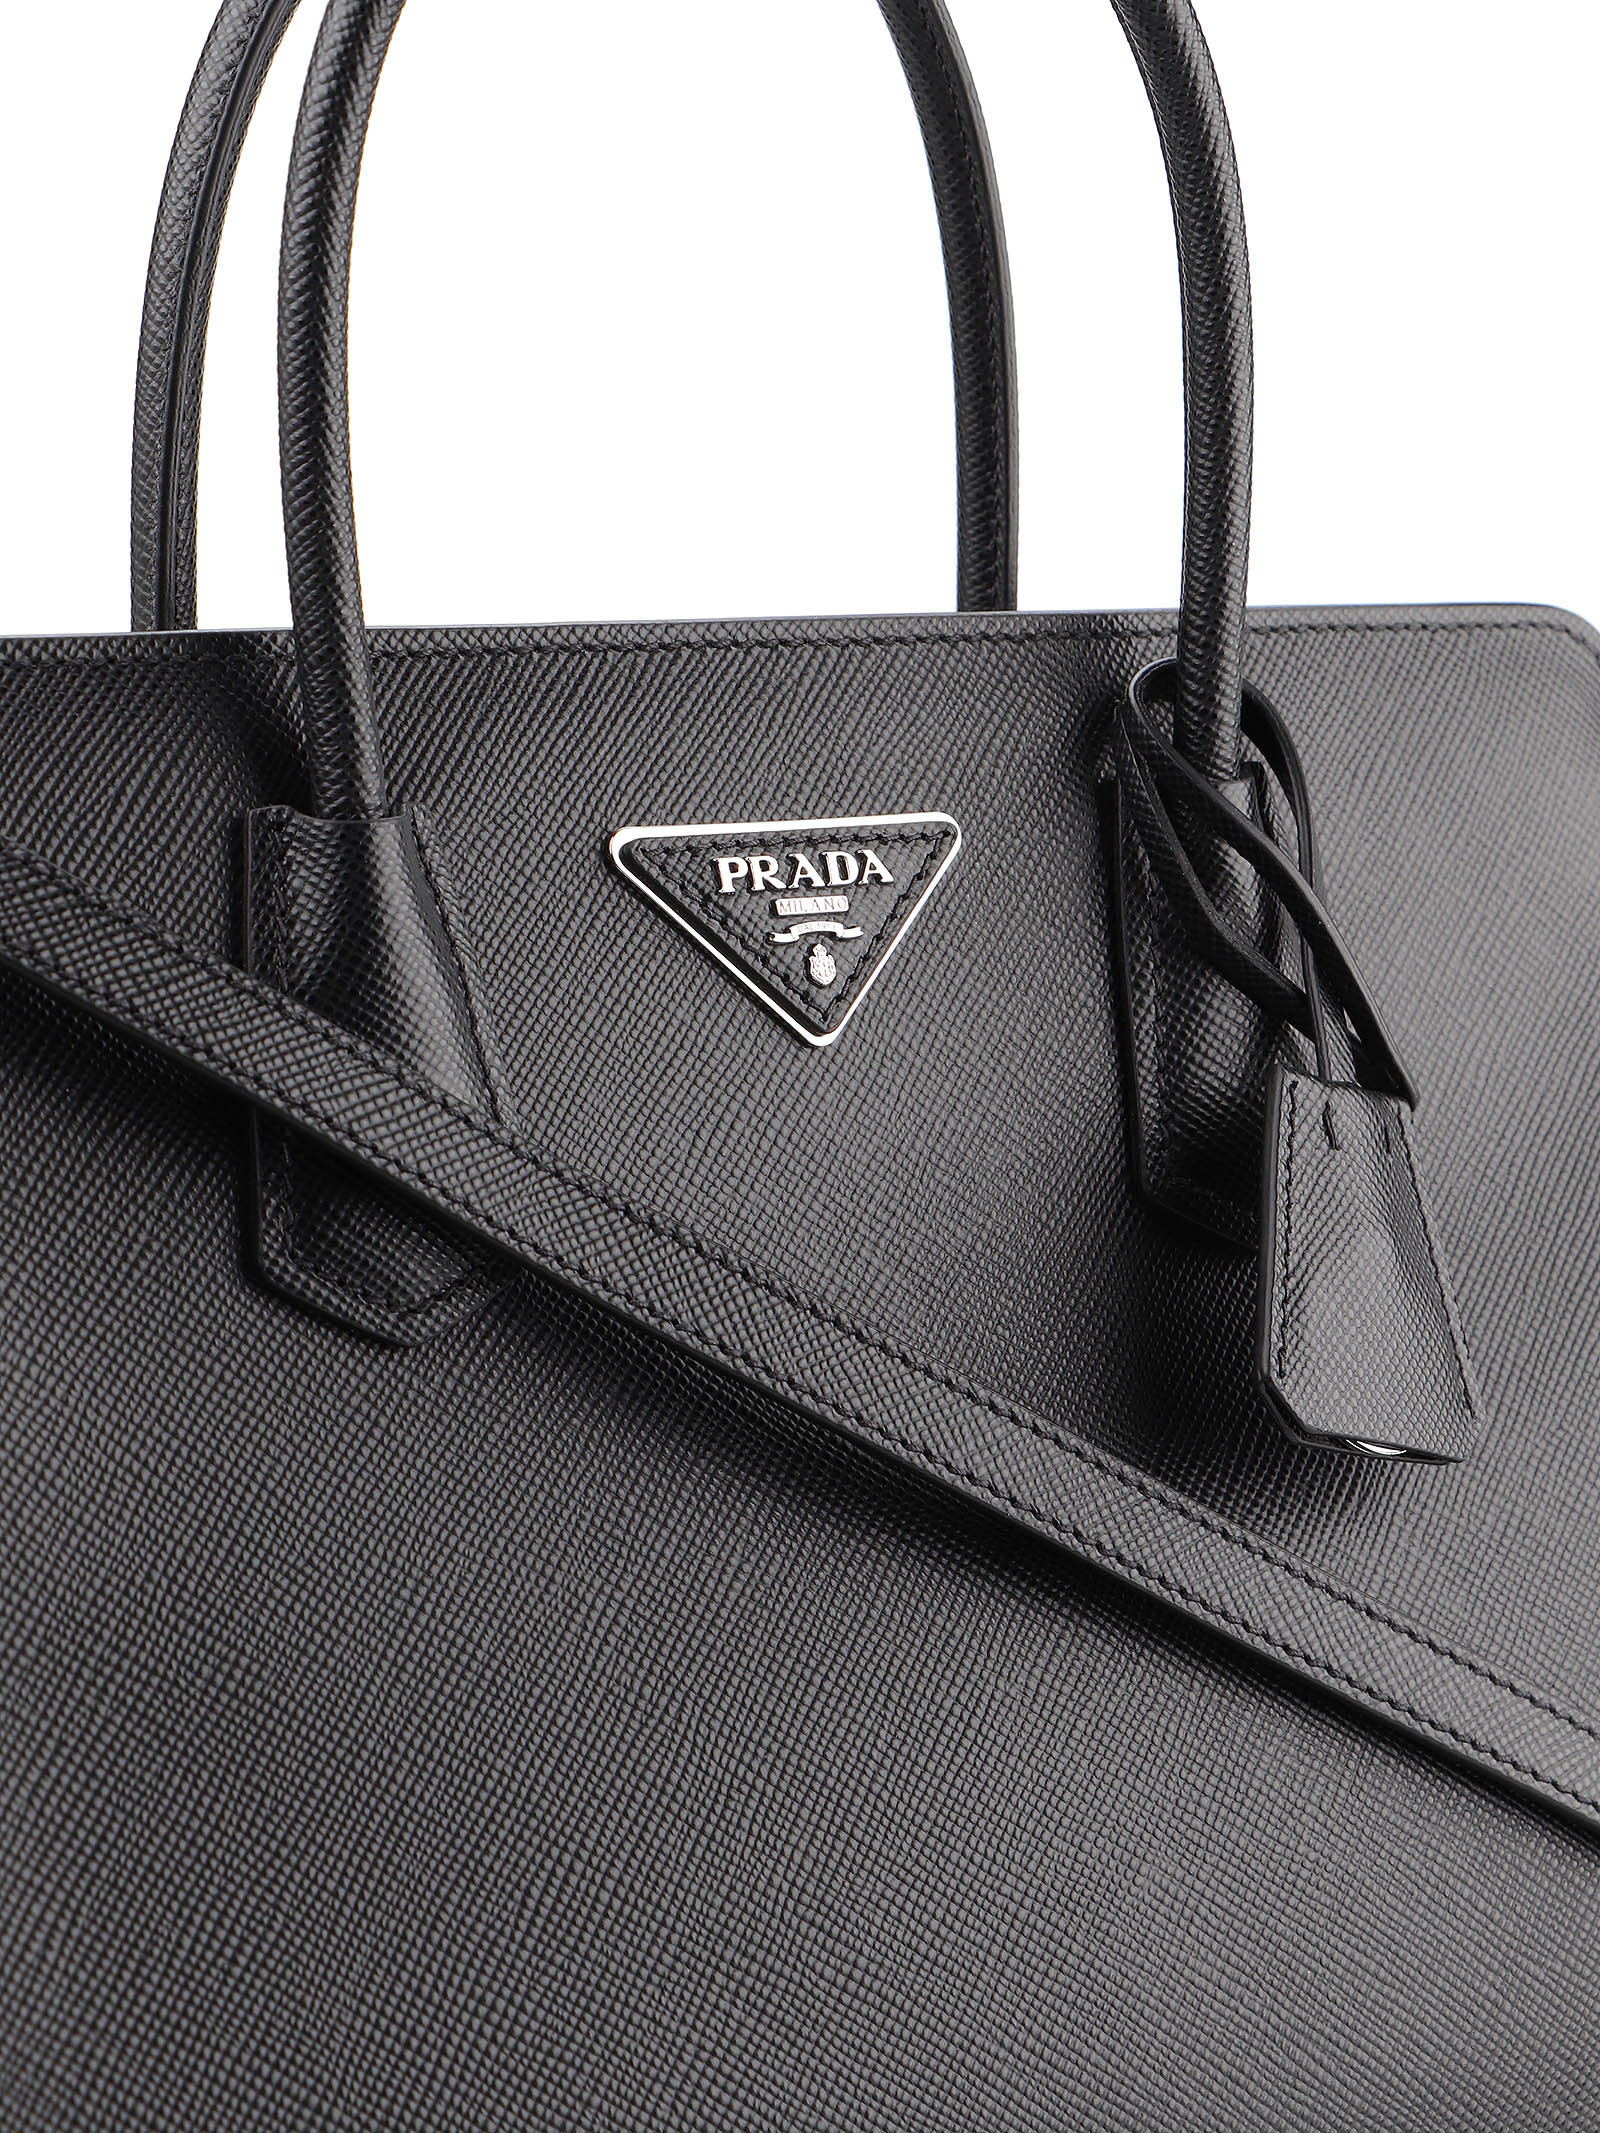 Immagine di Prada | Galleria Bag